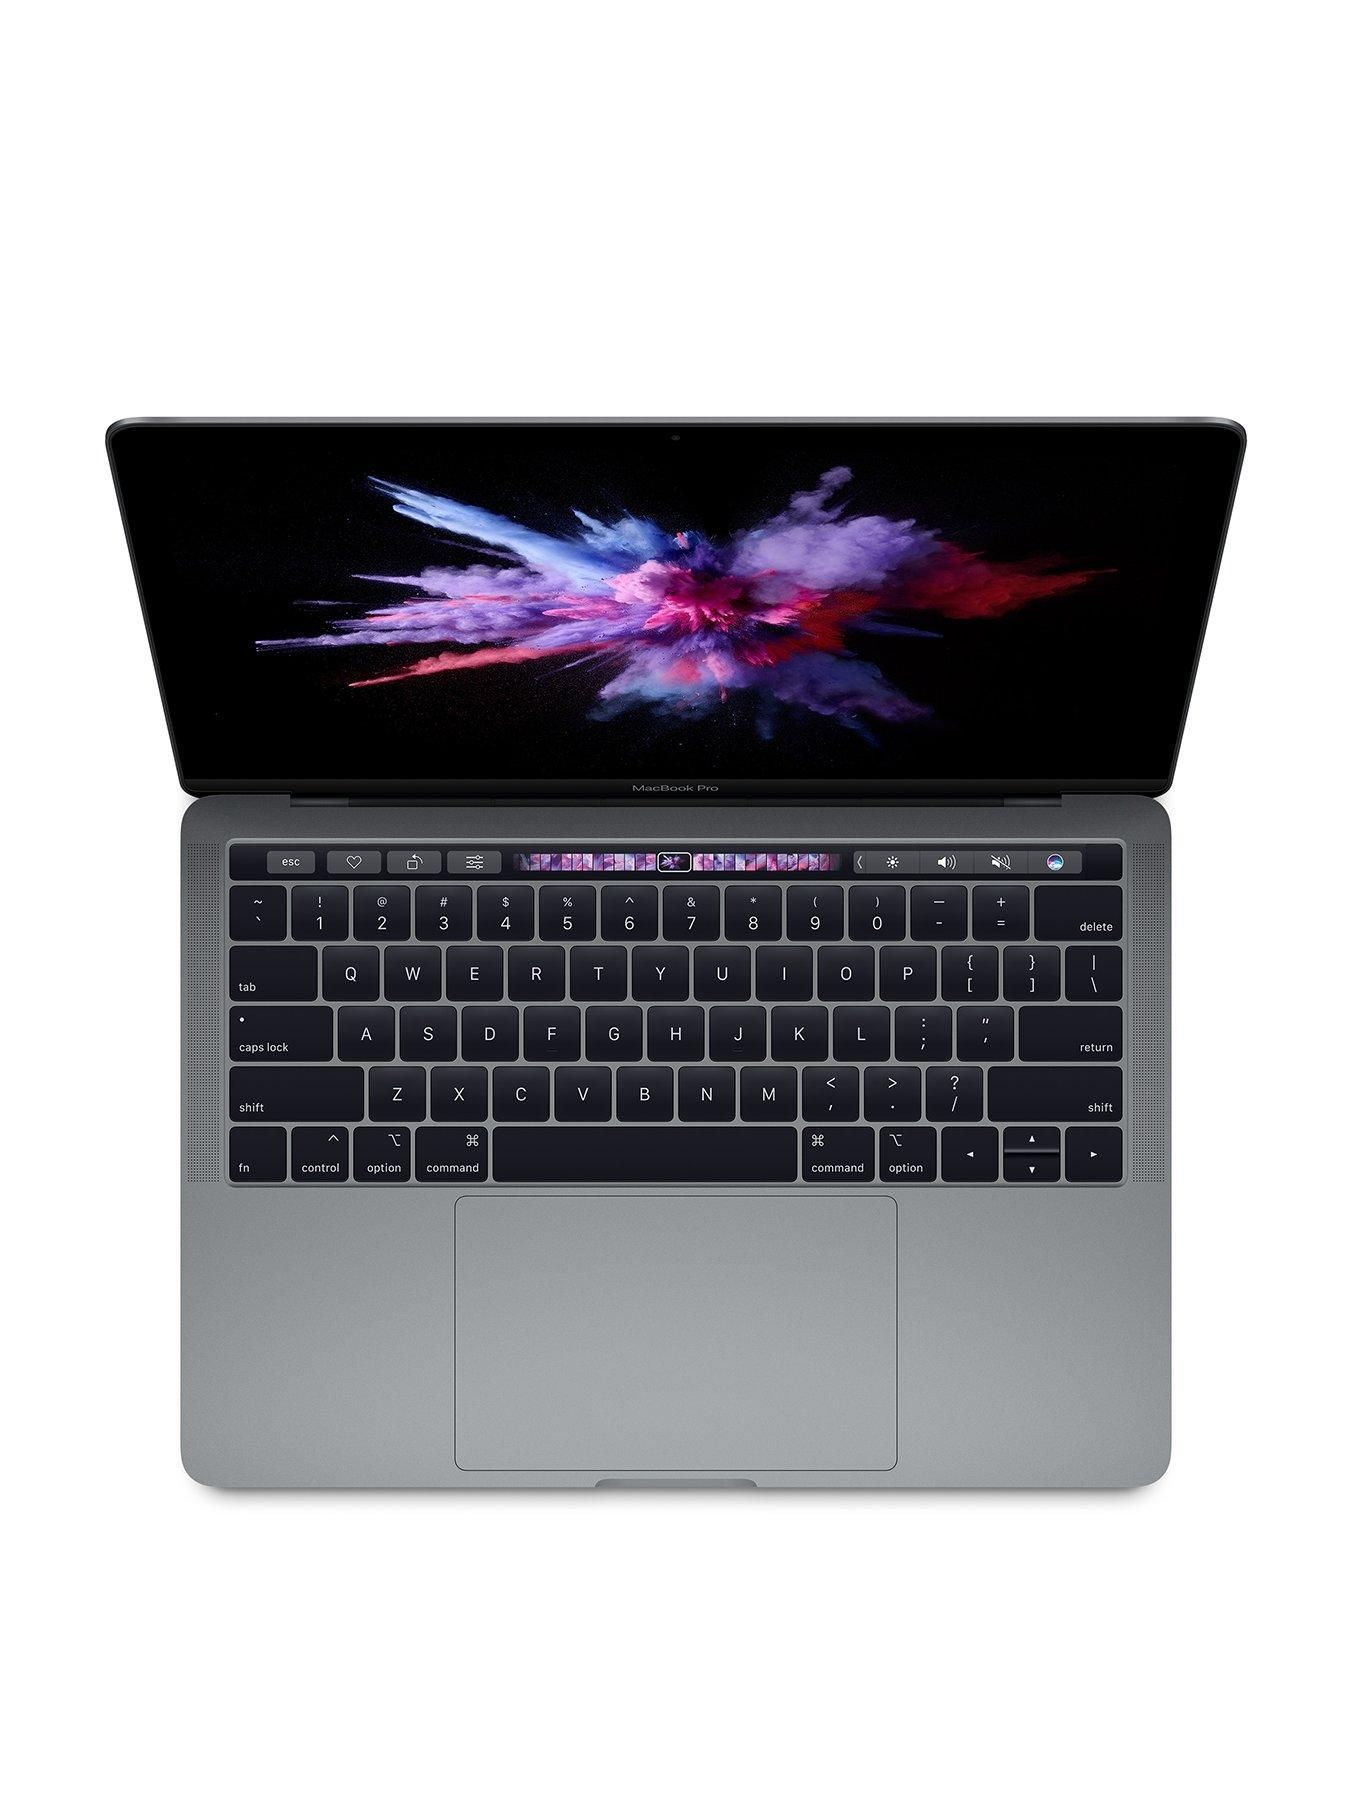 MacBook Pro (2019) 13 inch with Touch Bar, 1.4GHz Quad-Core 8th Gen In